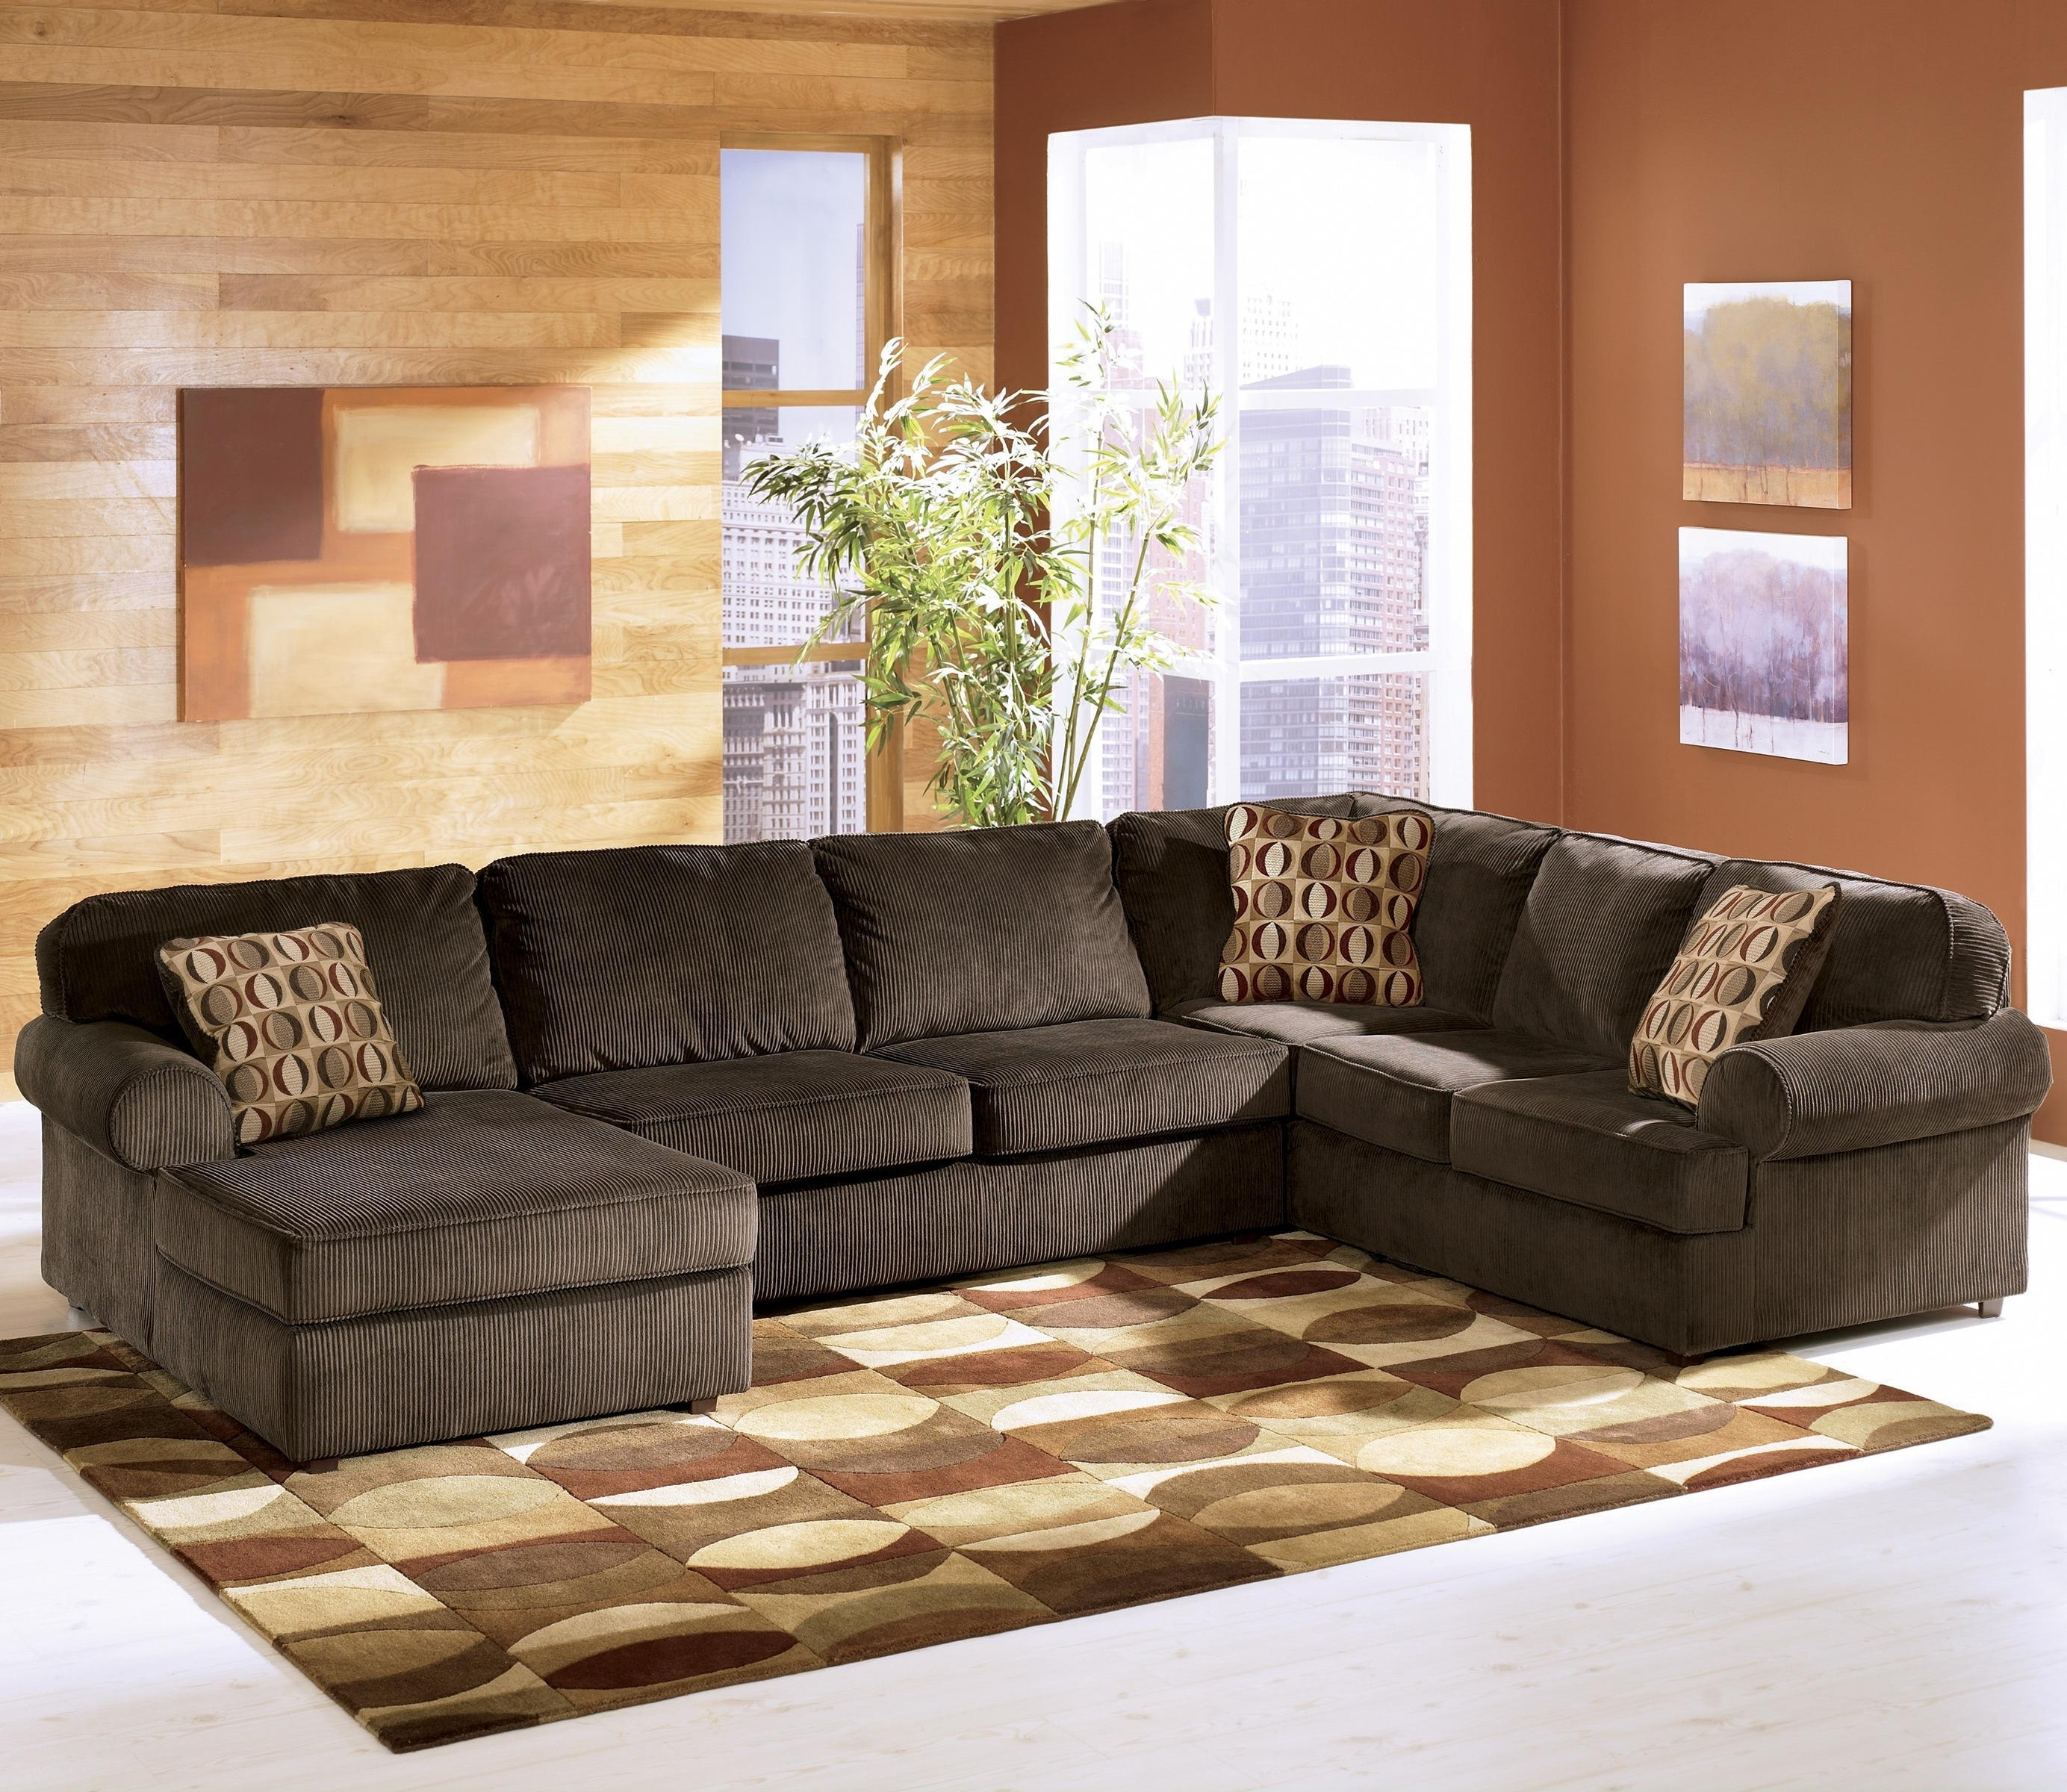 Furniture & Sofa: Cheap Couches | Ashley Furniture Evansville Intended For Wichita Ks Sectional Sofas (Image 9 of 10)